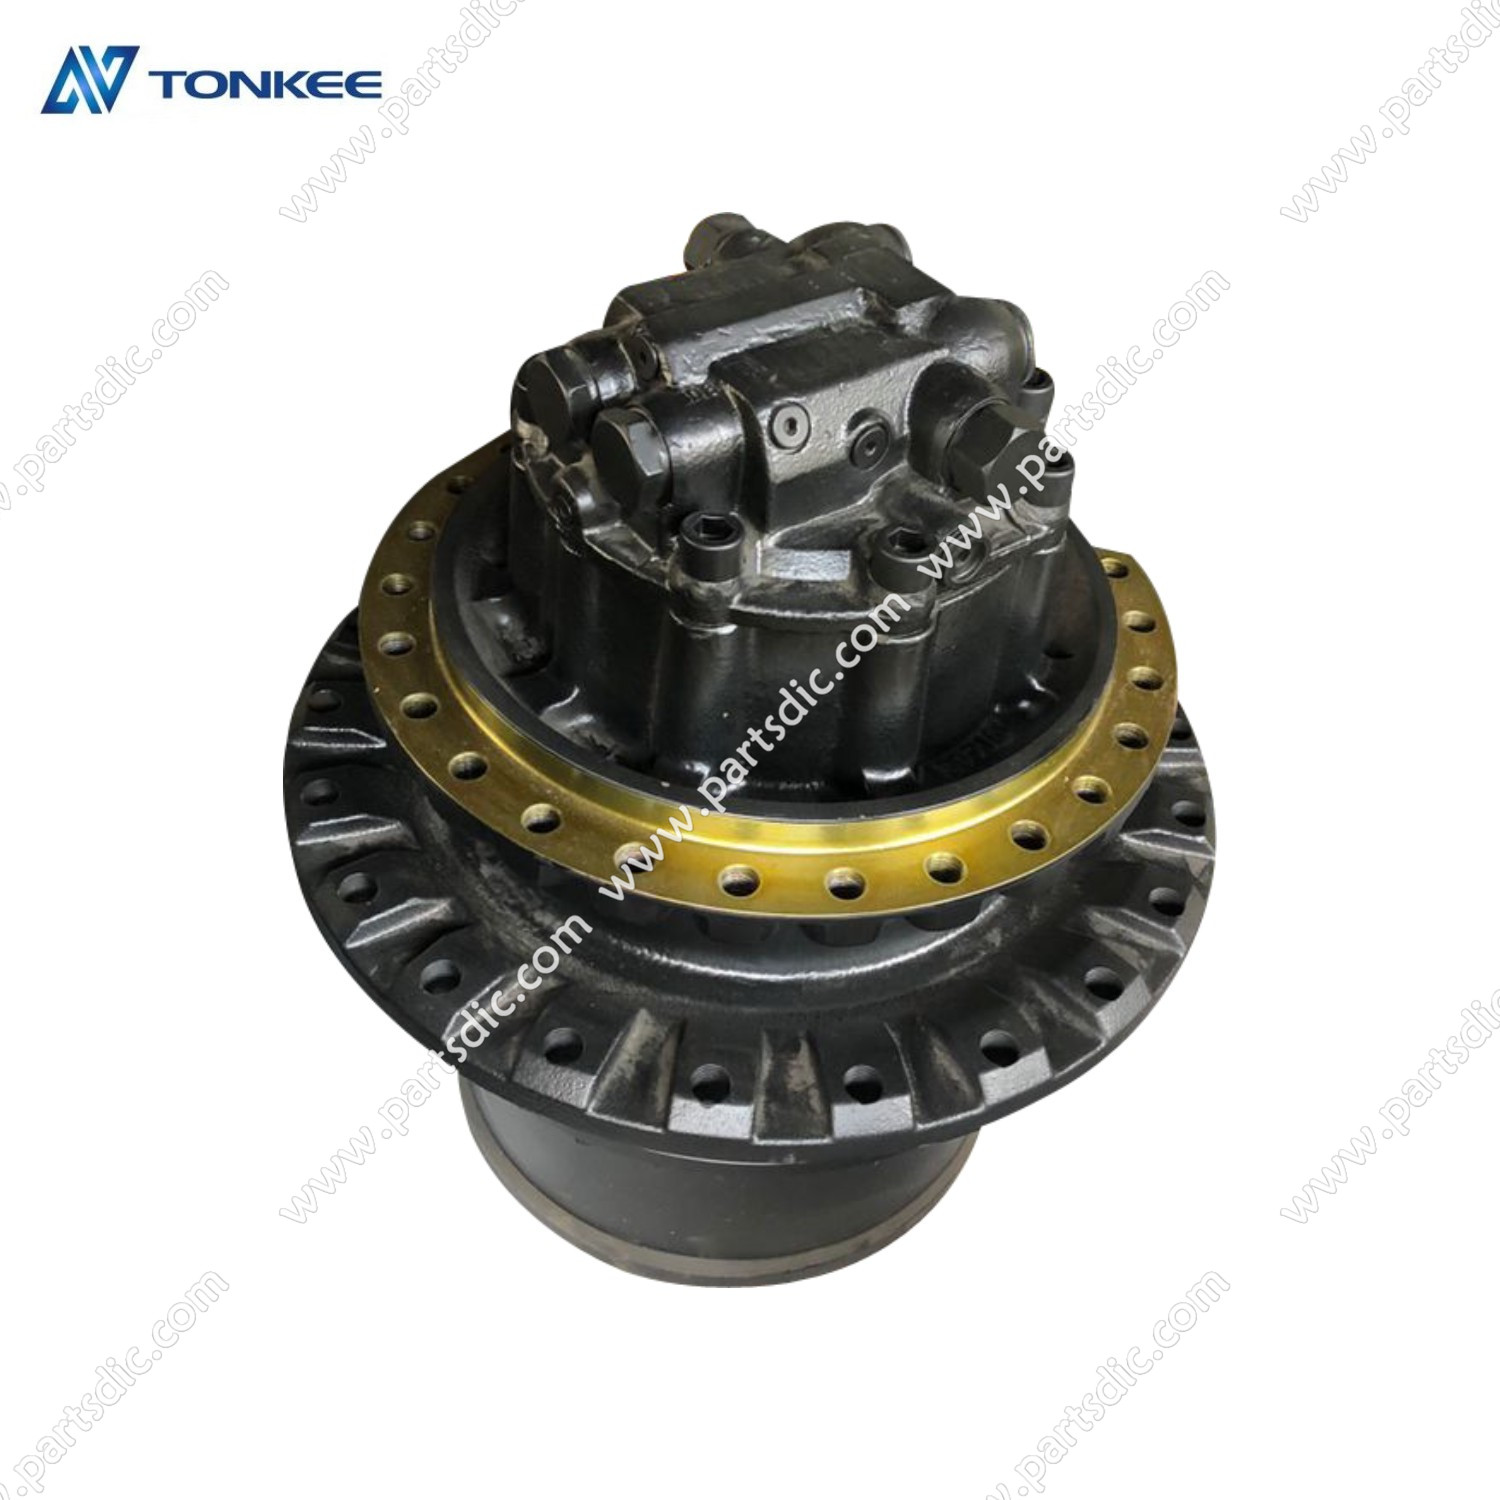 9190221 9190222 9212584 9232360 excavator final drive manufacturer ZX330 ZX350 ZX360 ZX370 travel device travel motor oil suitable for HITACHI